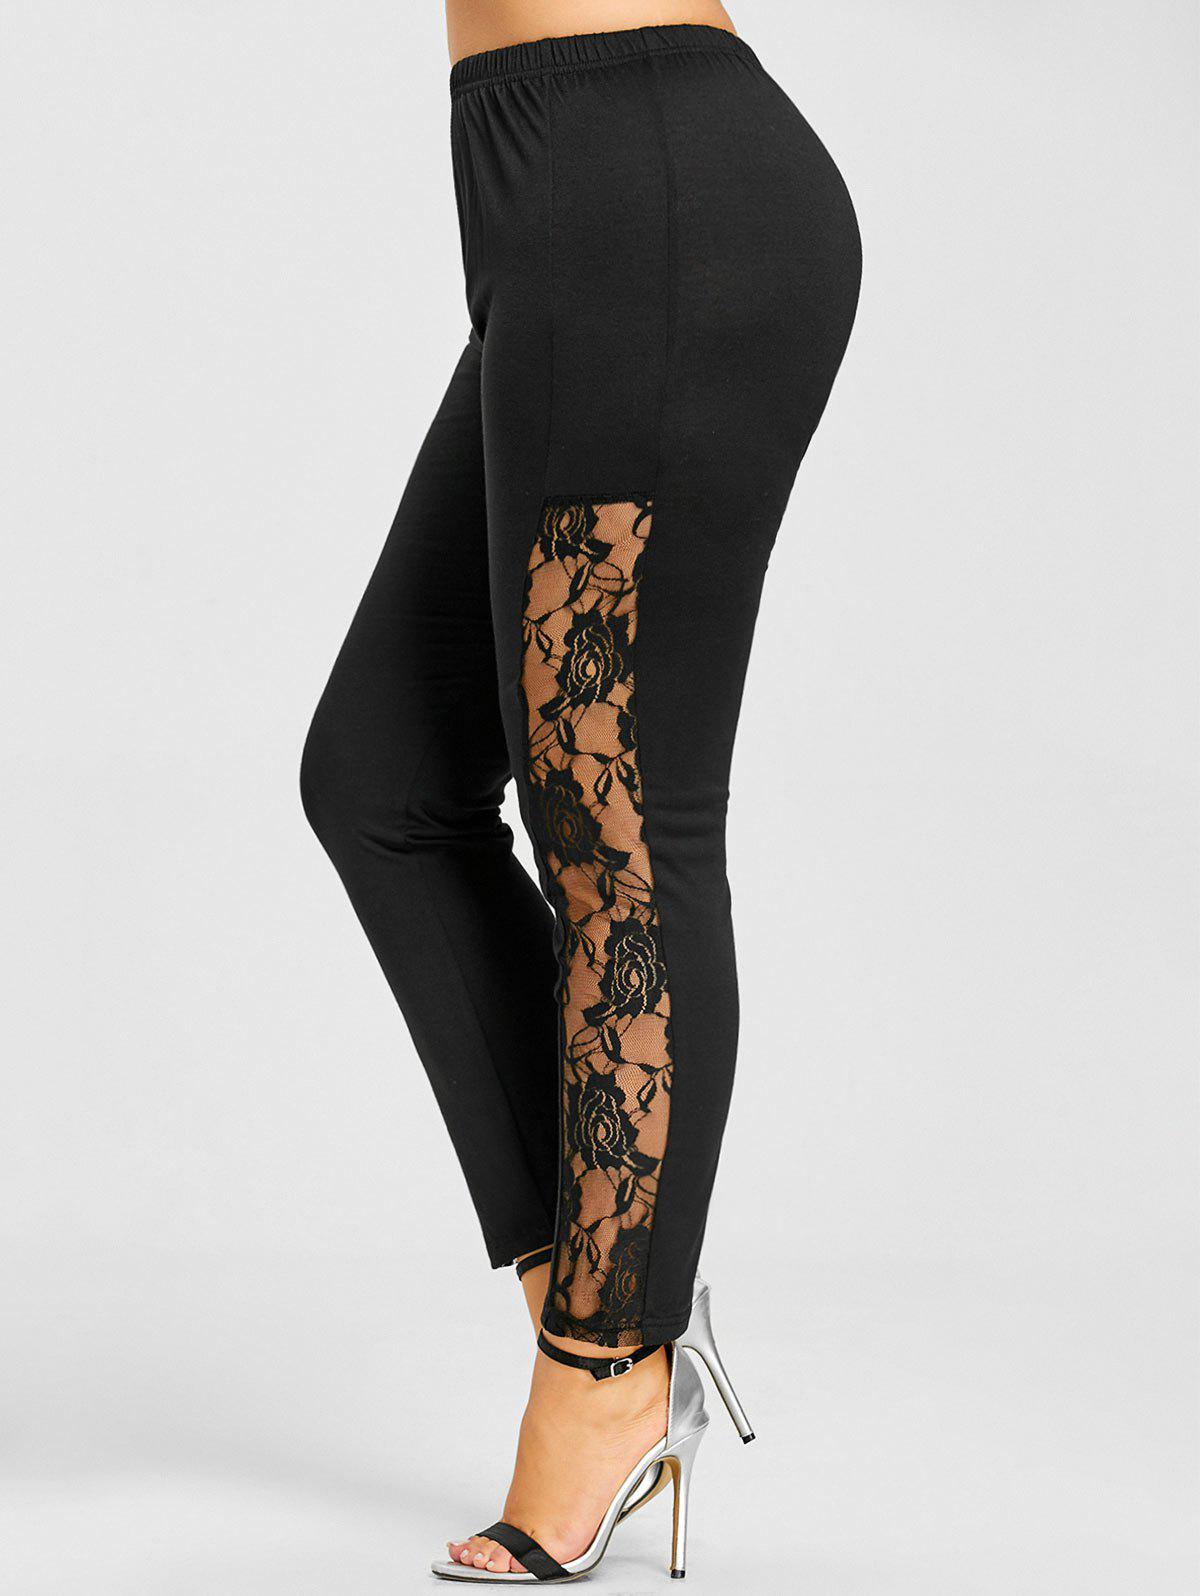 Lace Insert Skinny Plus Size Leggings